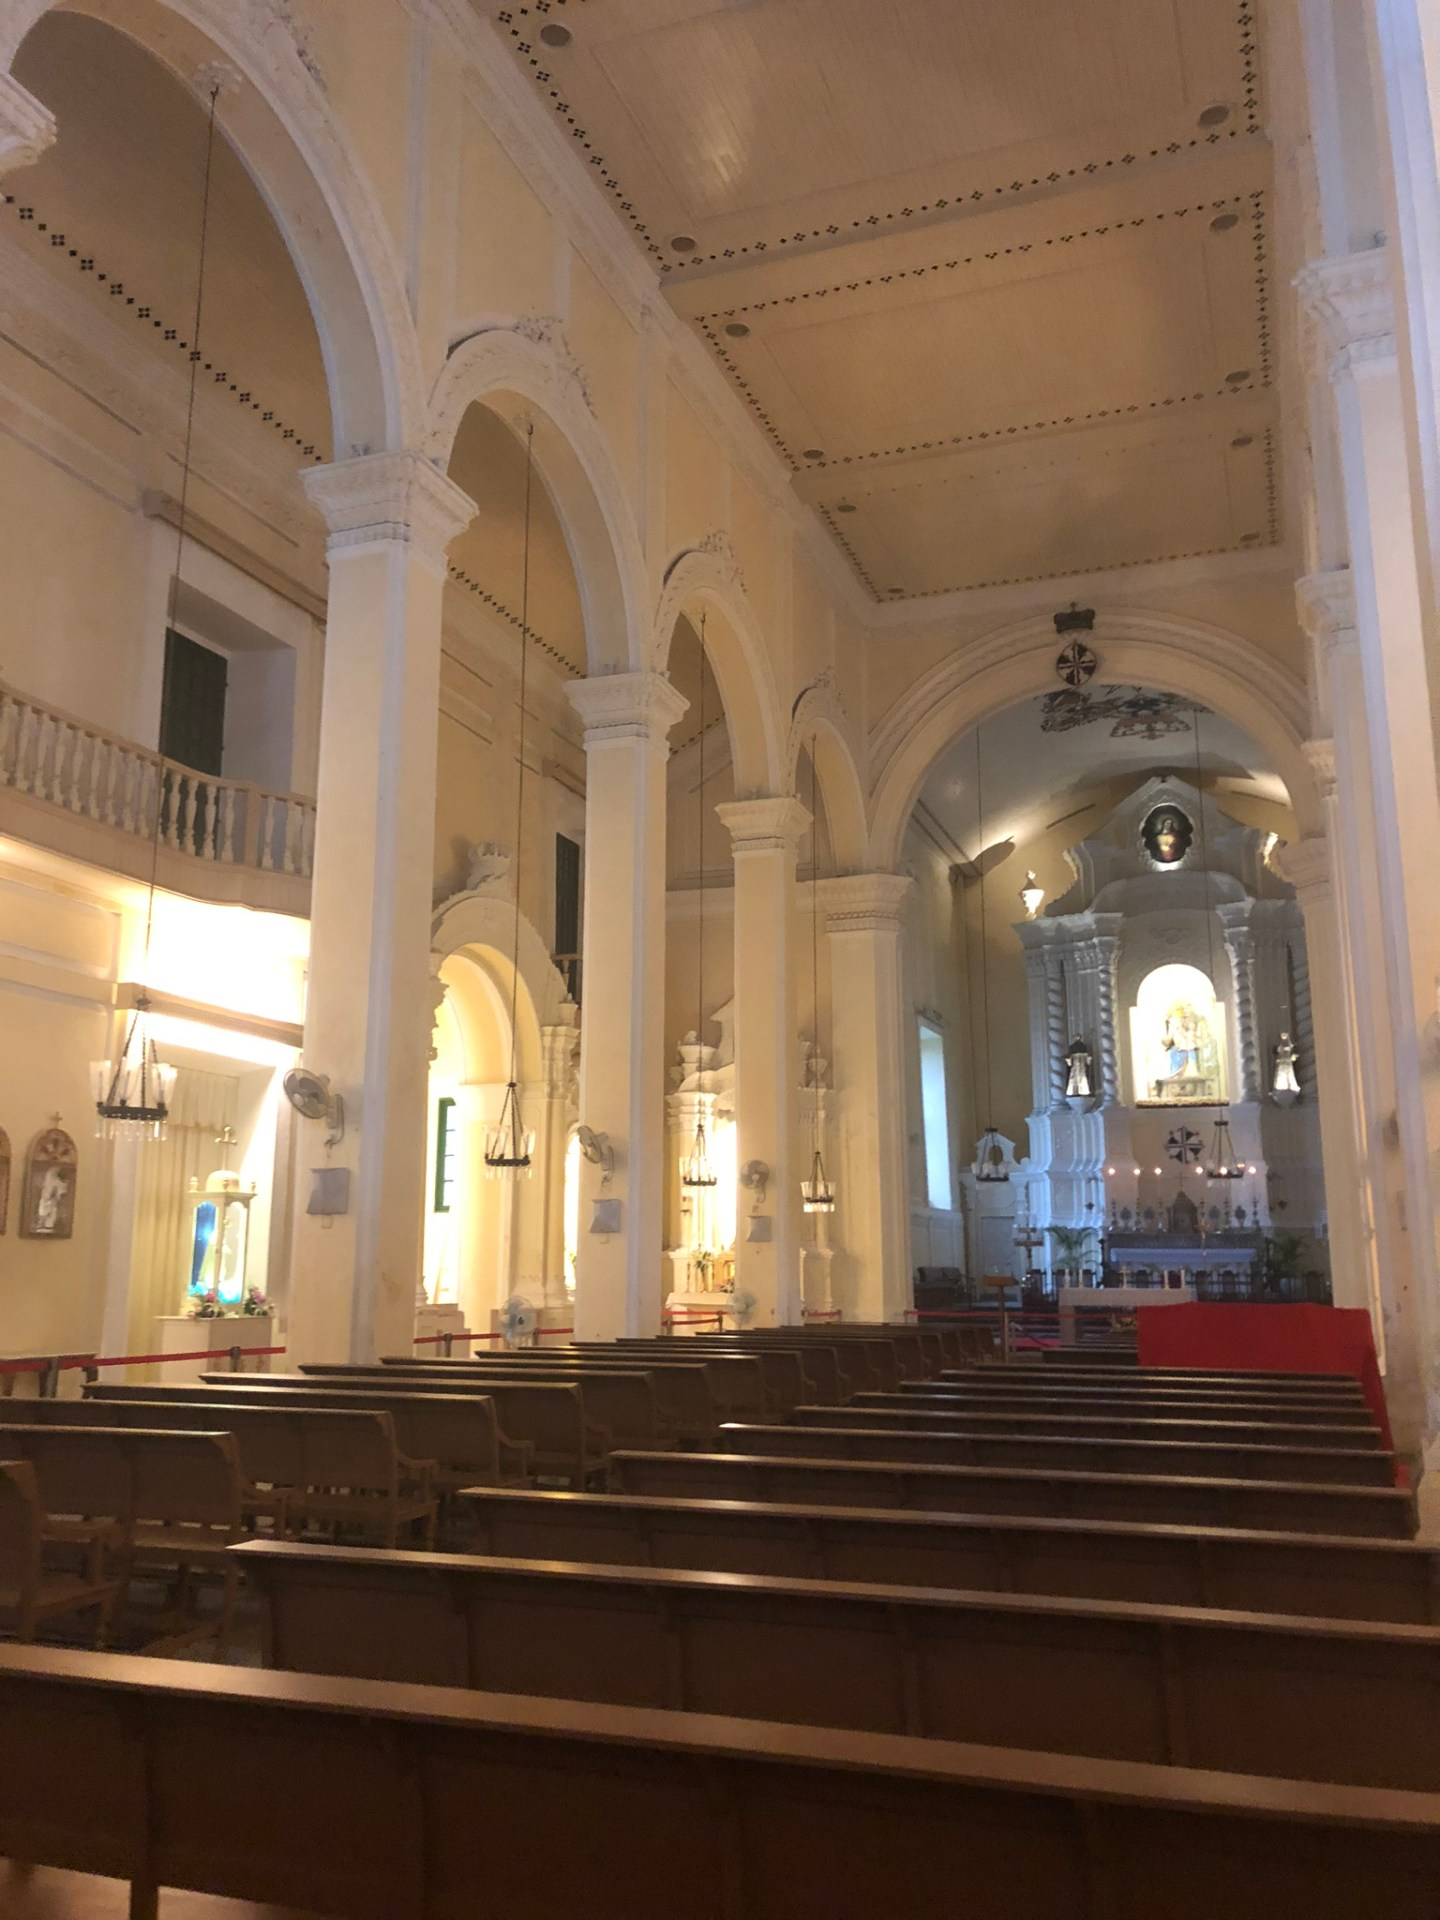 Inside St Dominics Church, Macau